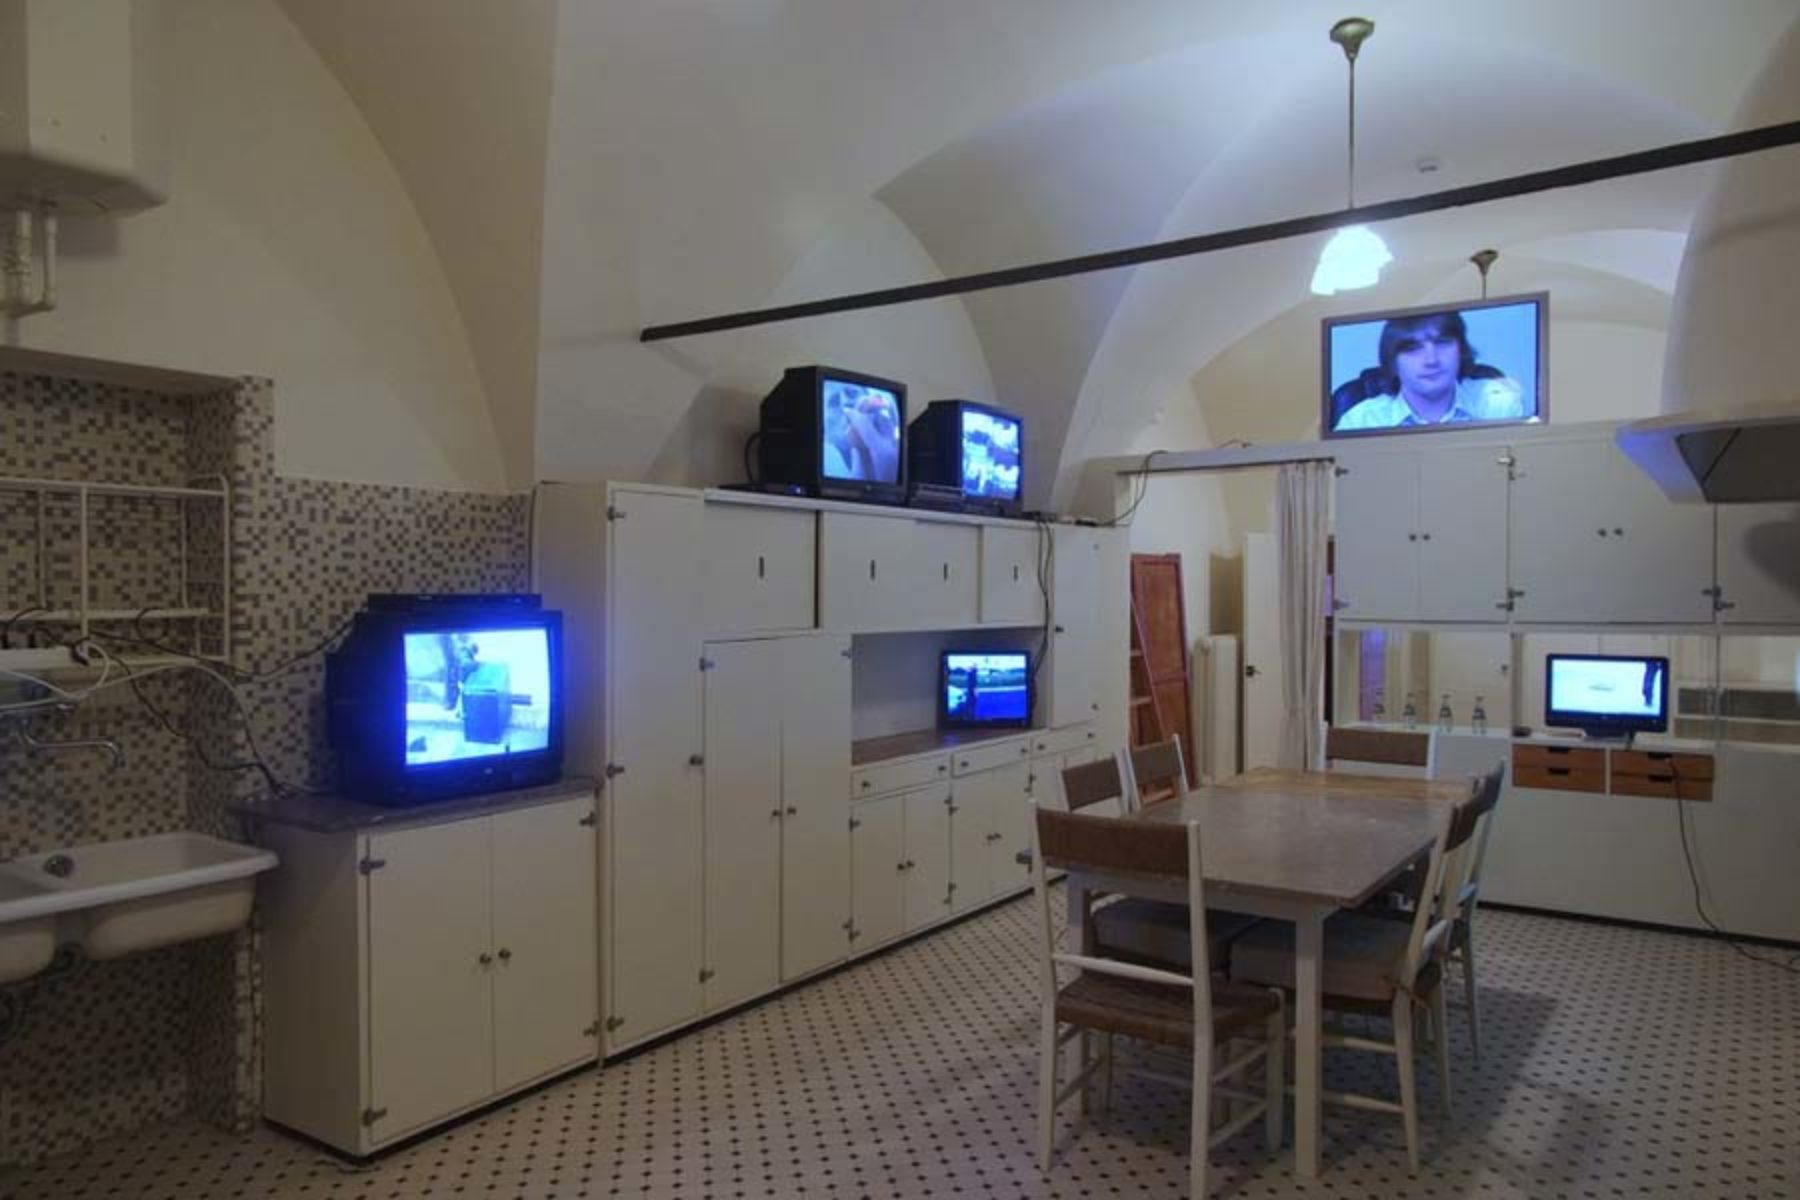 I. Moudov, Old Videos on Old Monitors, 2013, installation, videos, TV, dvd players 3